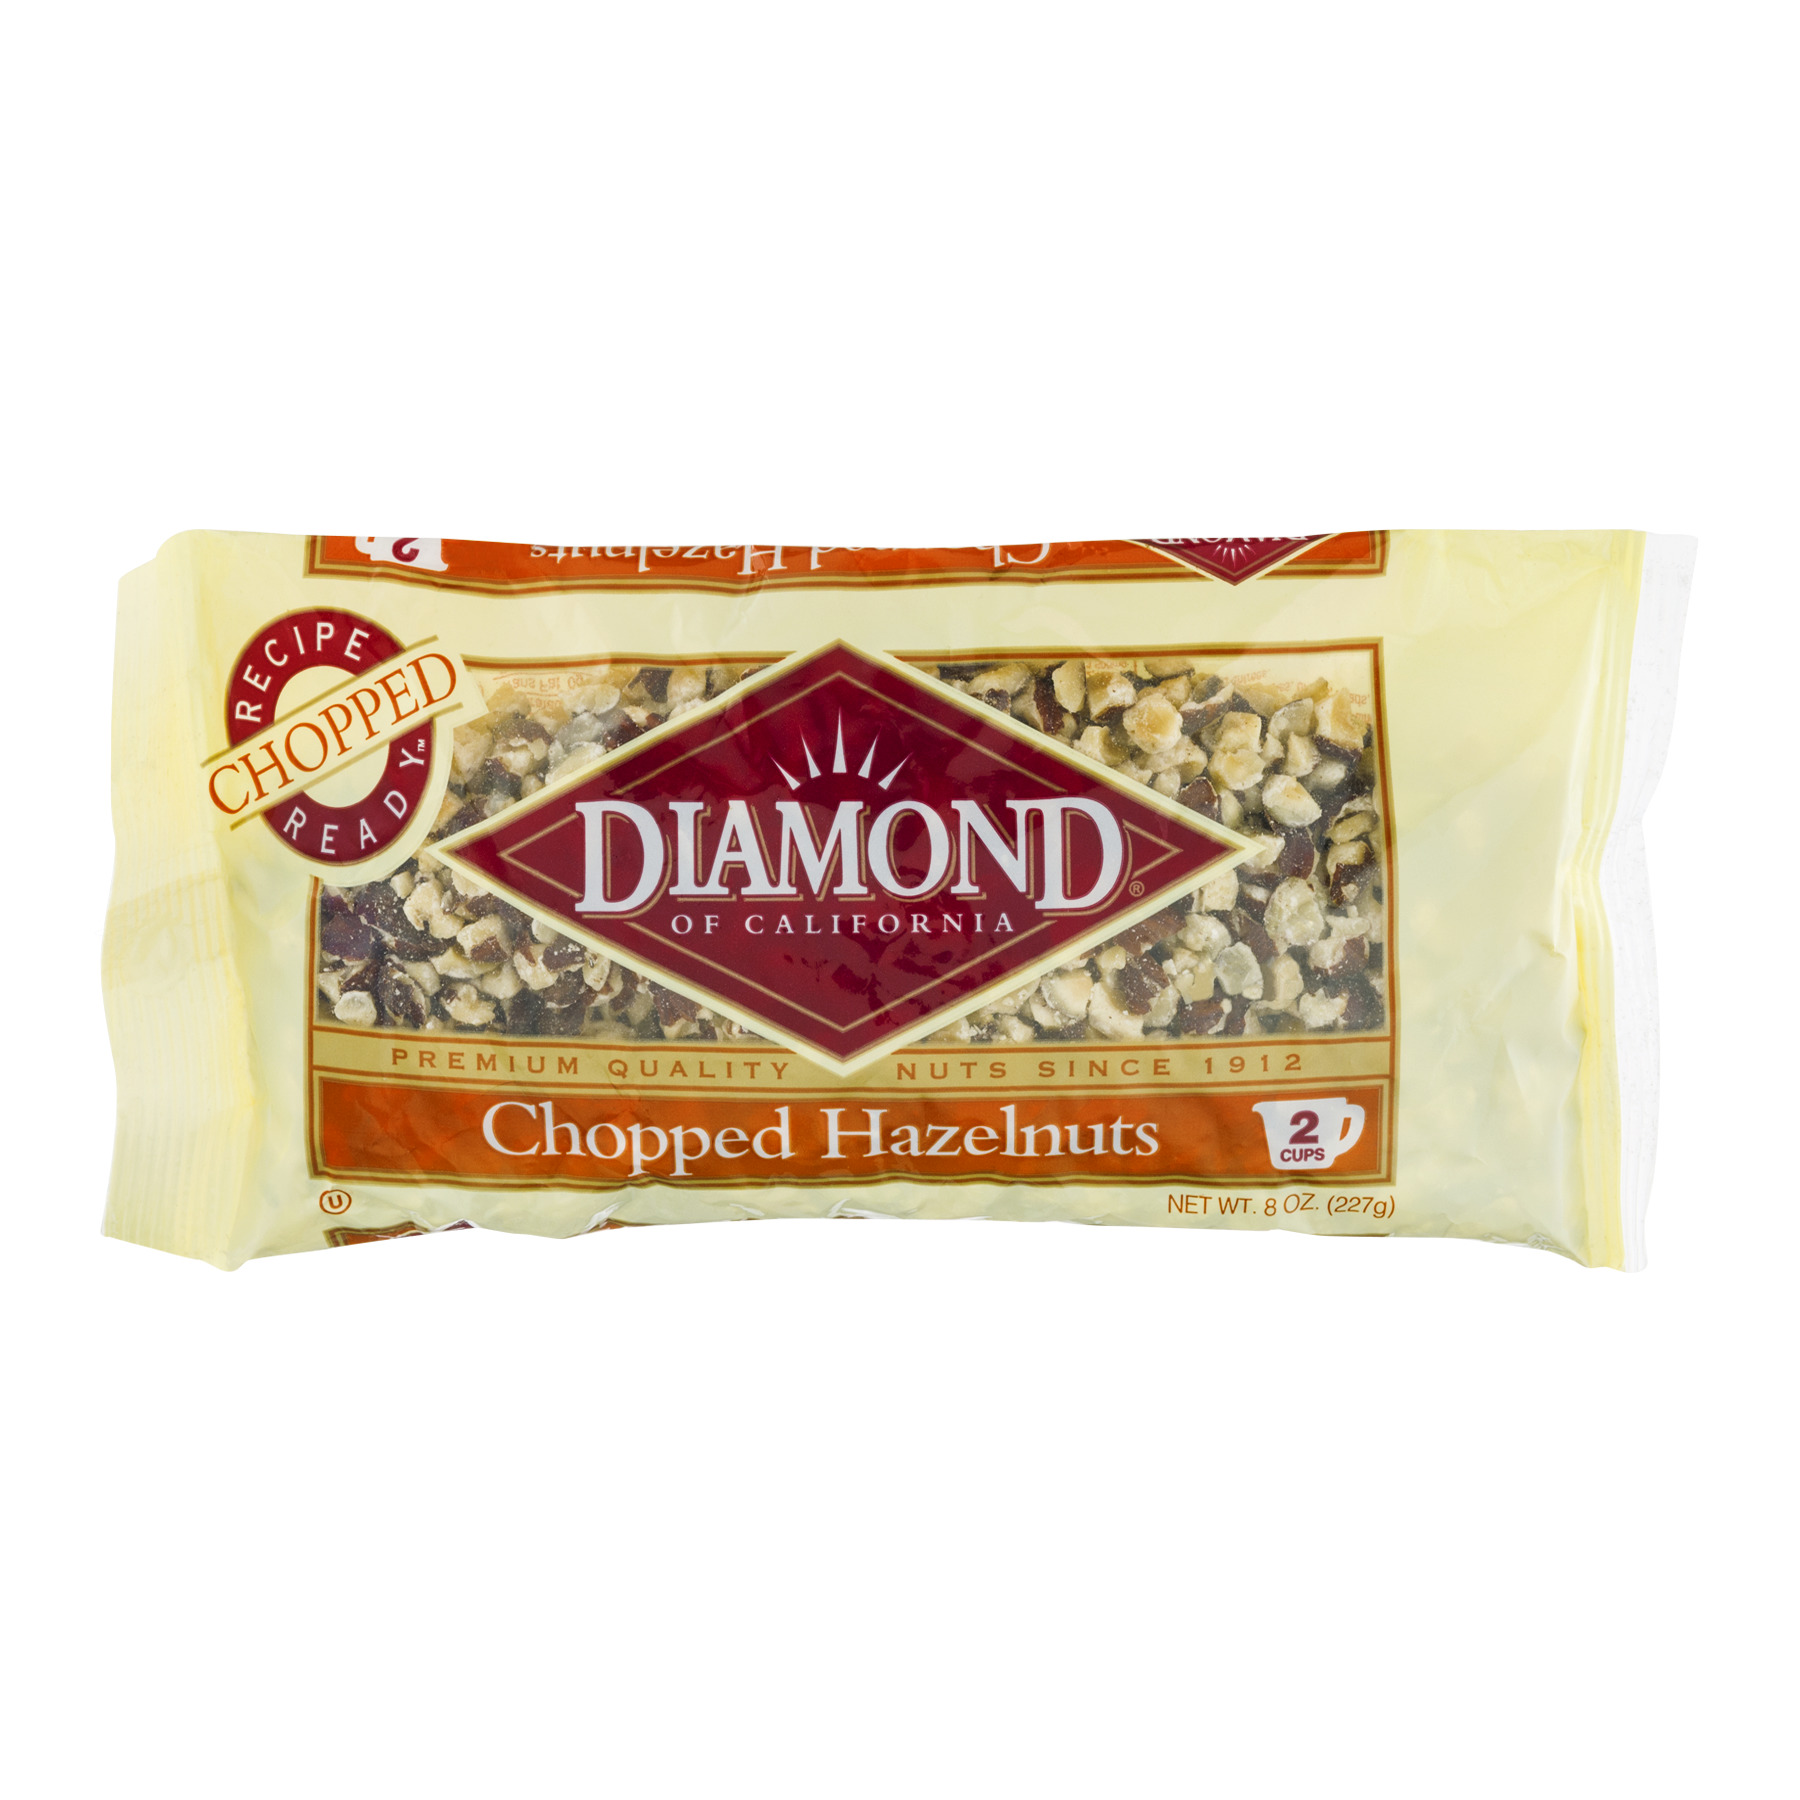 Diamond Chopped Hazelnuts, 8.0 OZ